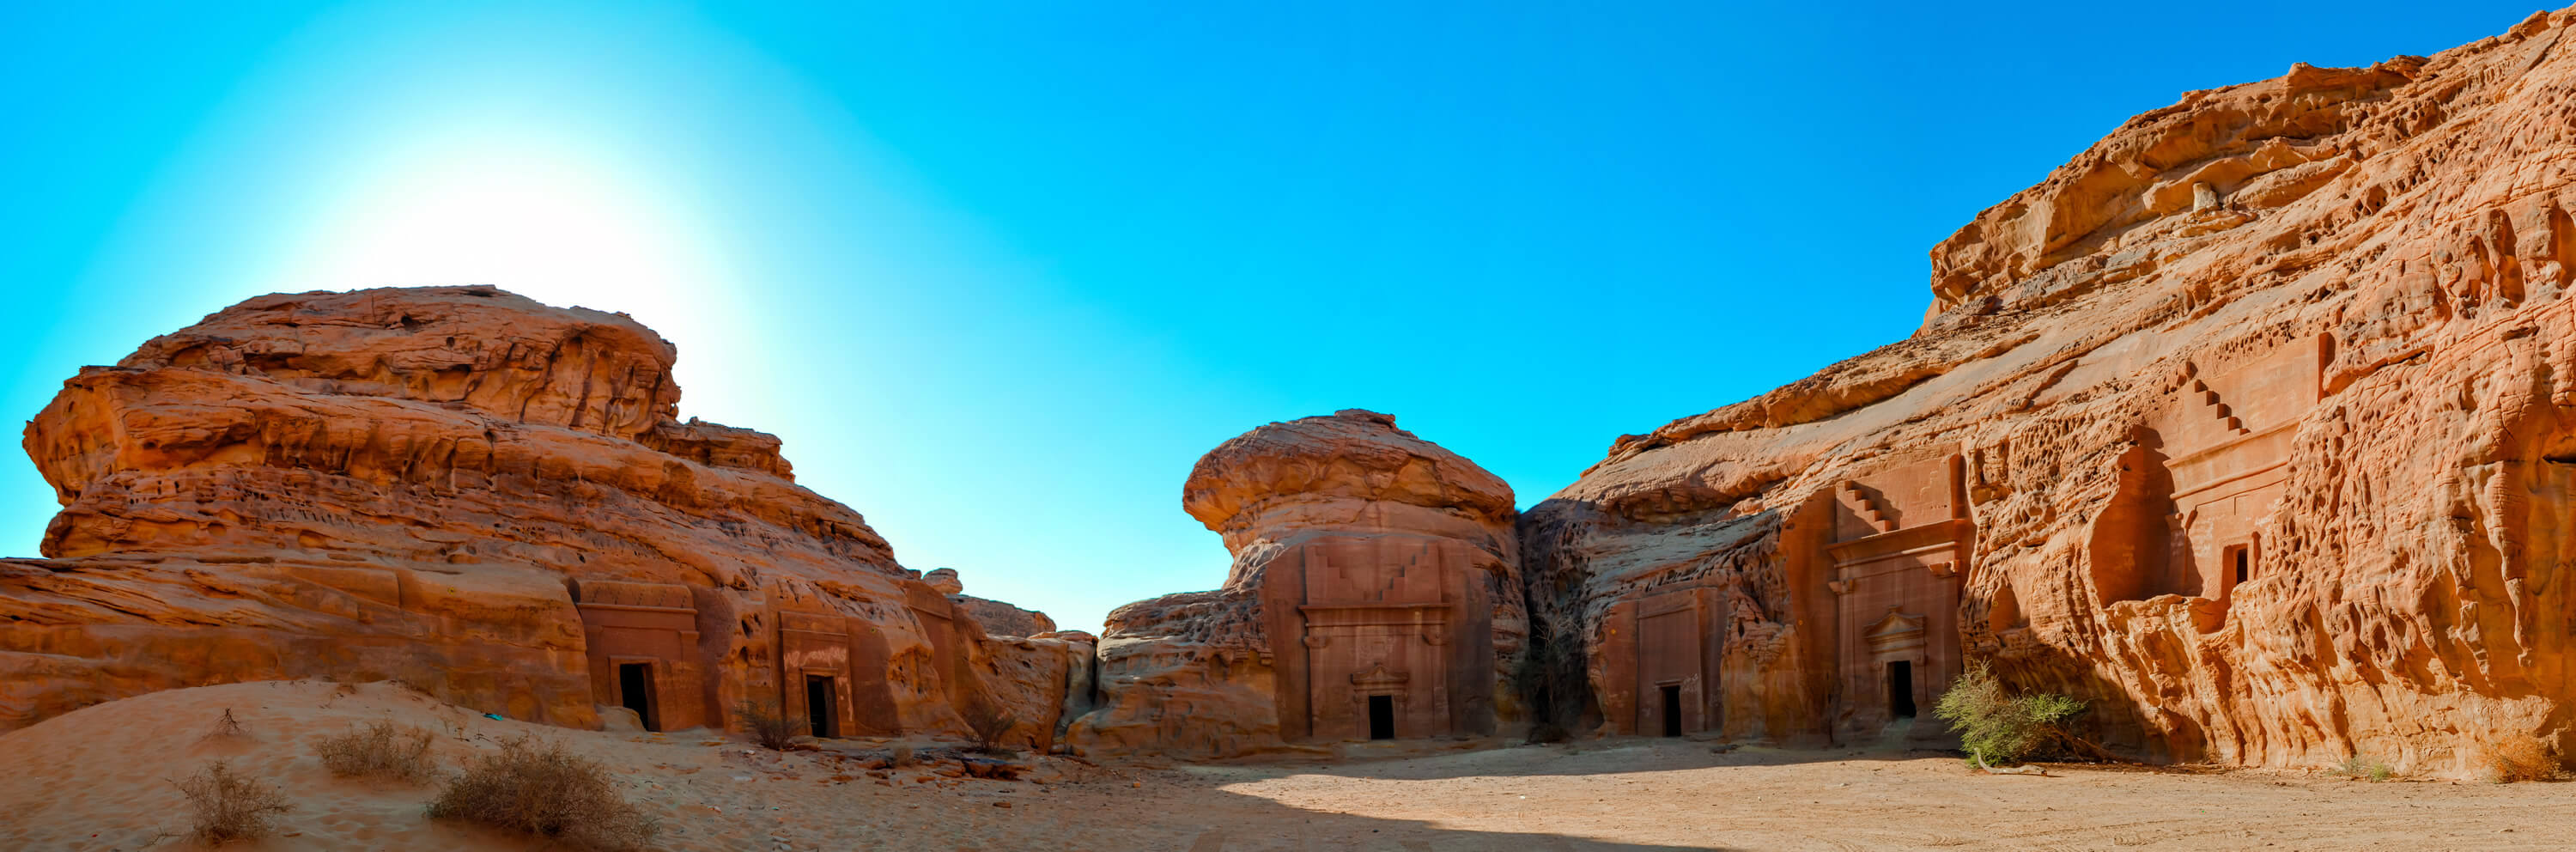 Arabian Historic Place, Saudi Arabia